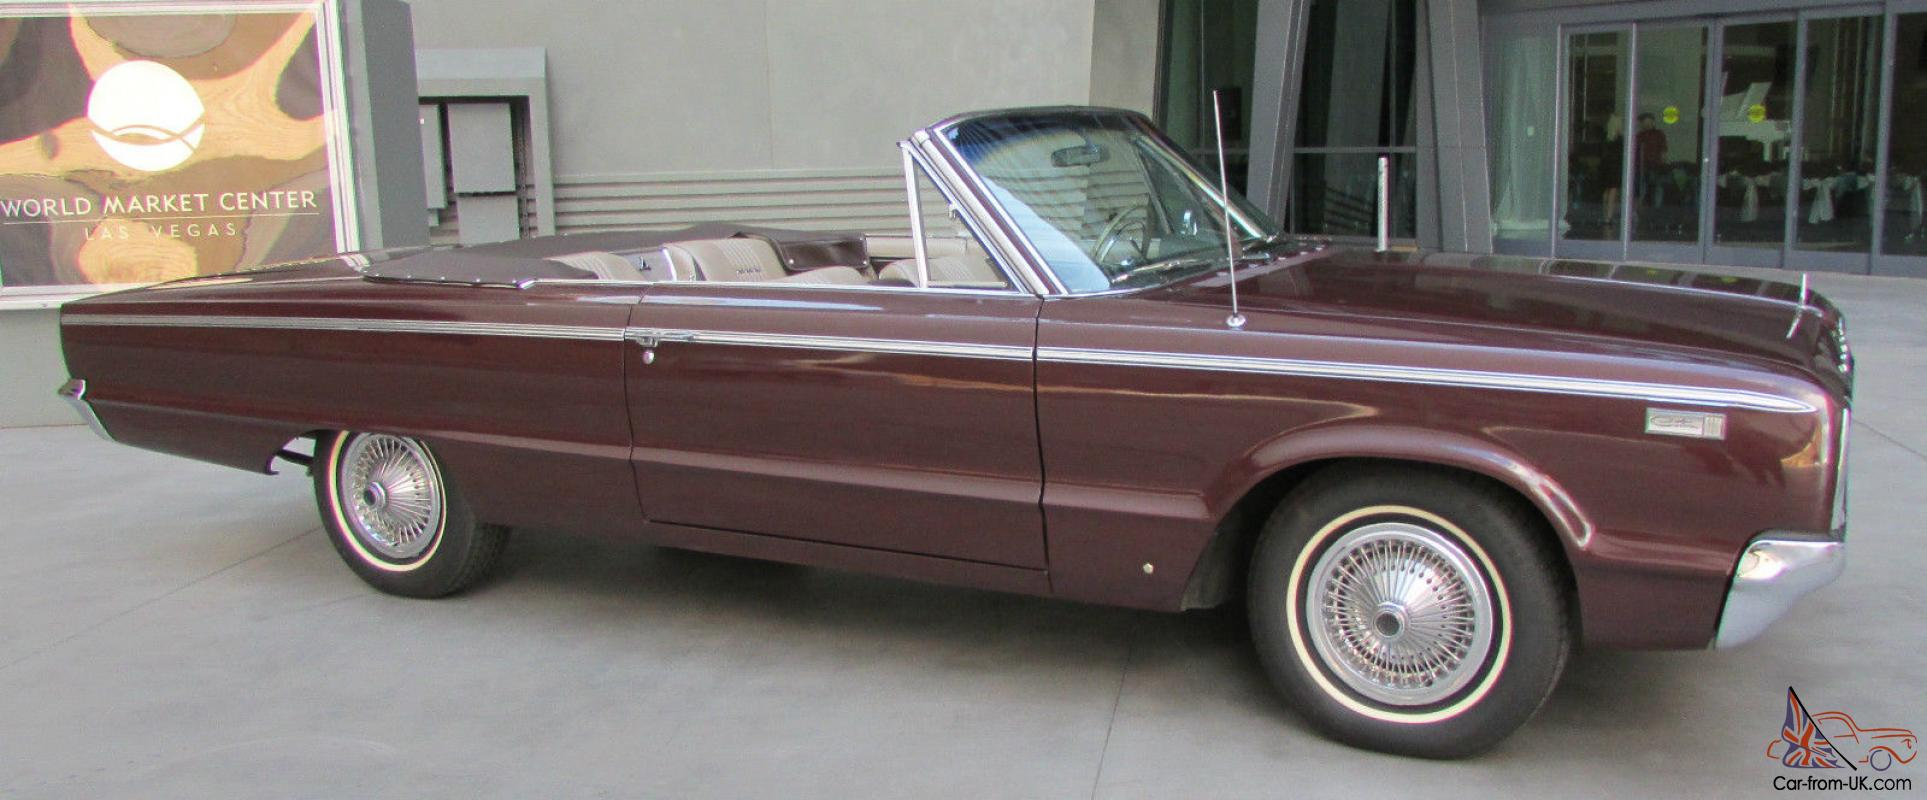 1965 dodge custom 880 convertible